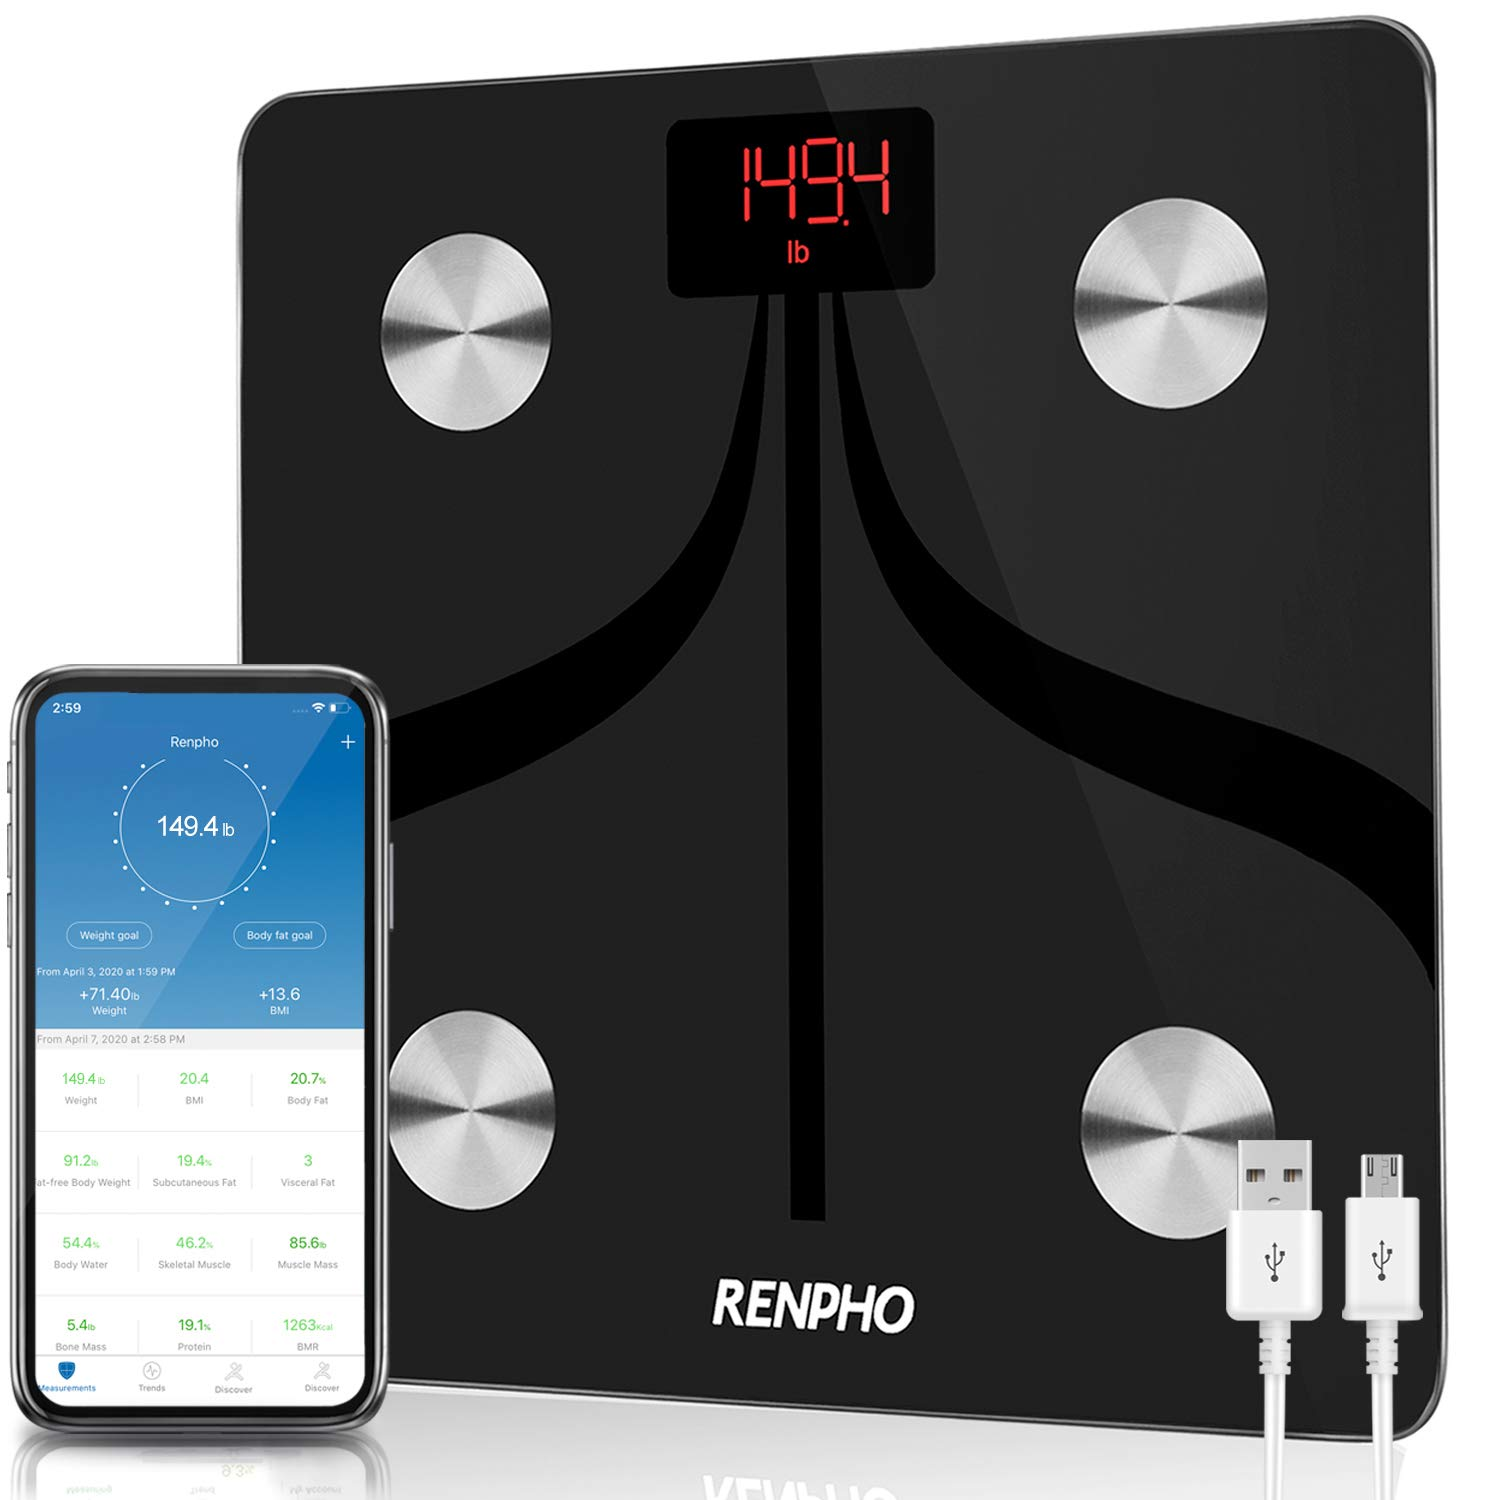 RENPHO Body Fat Scale Weight Bathroom Smart Digital Bluetooth Scale USB Rechargeable with Smartphone App , Body Composition Monitor for Body Fat, BMI, Bone Mass, Weight, 396 lbs Black